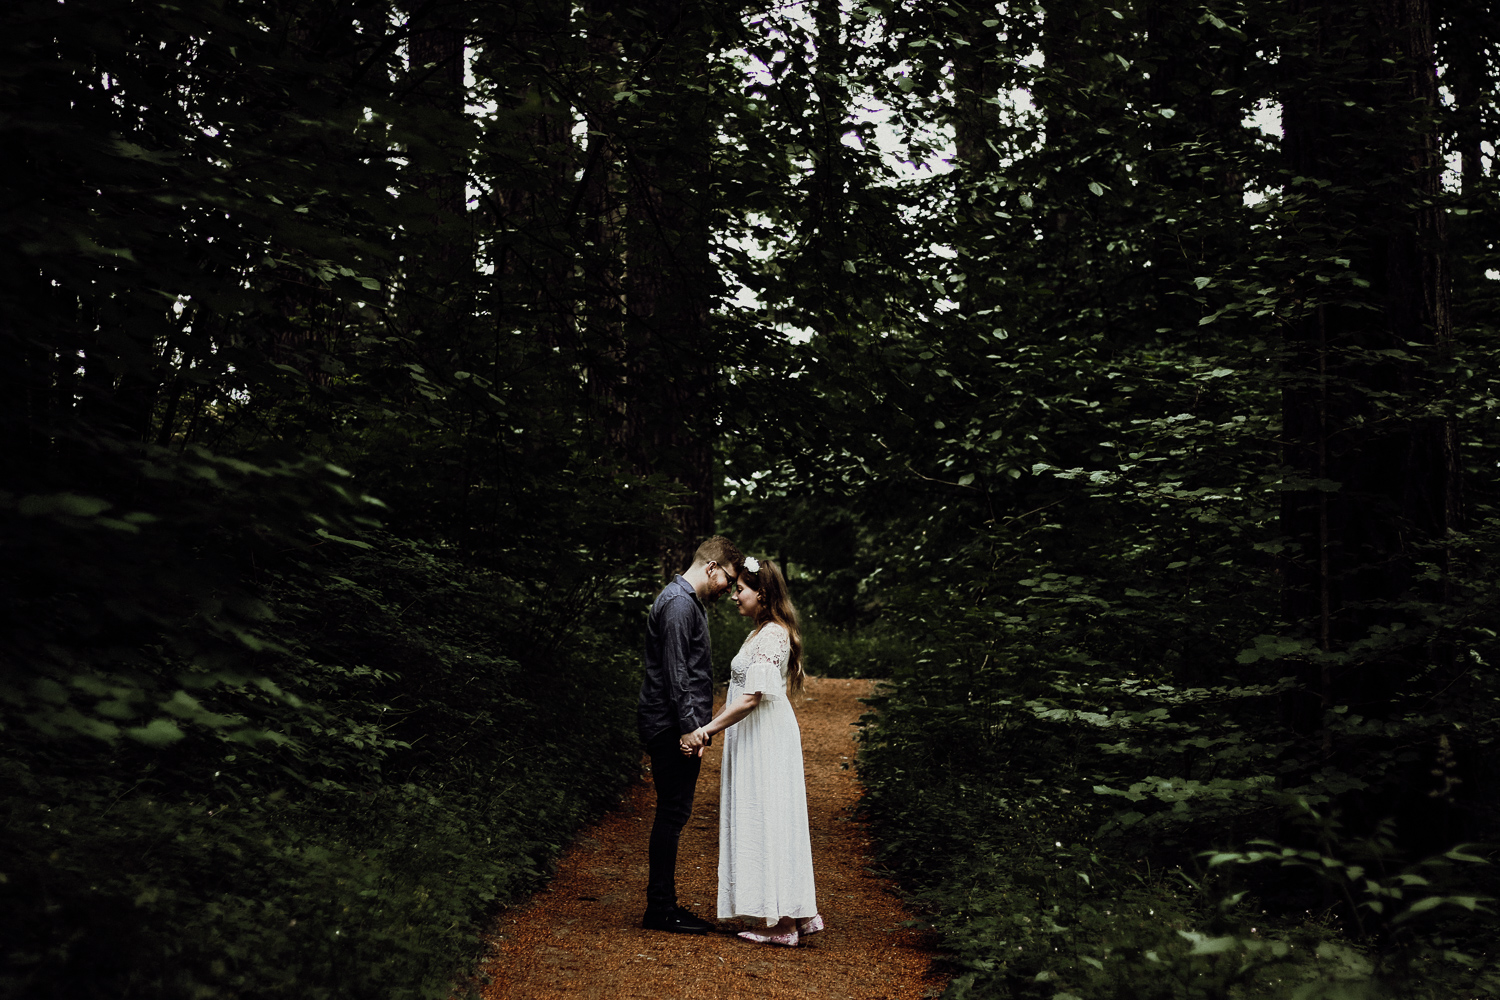 Portland_Oregon_Elopement_Photography_KeltikSean1.jpg